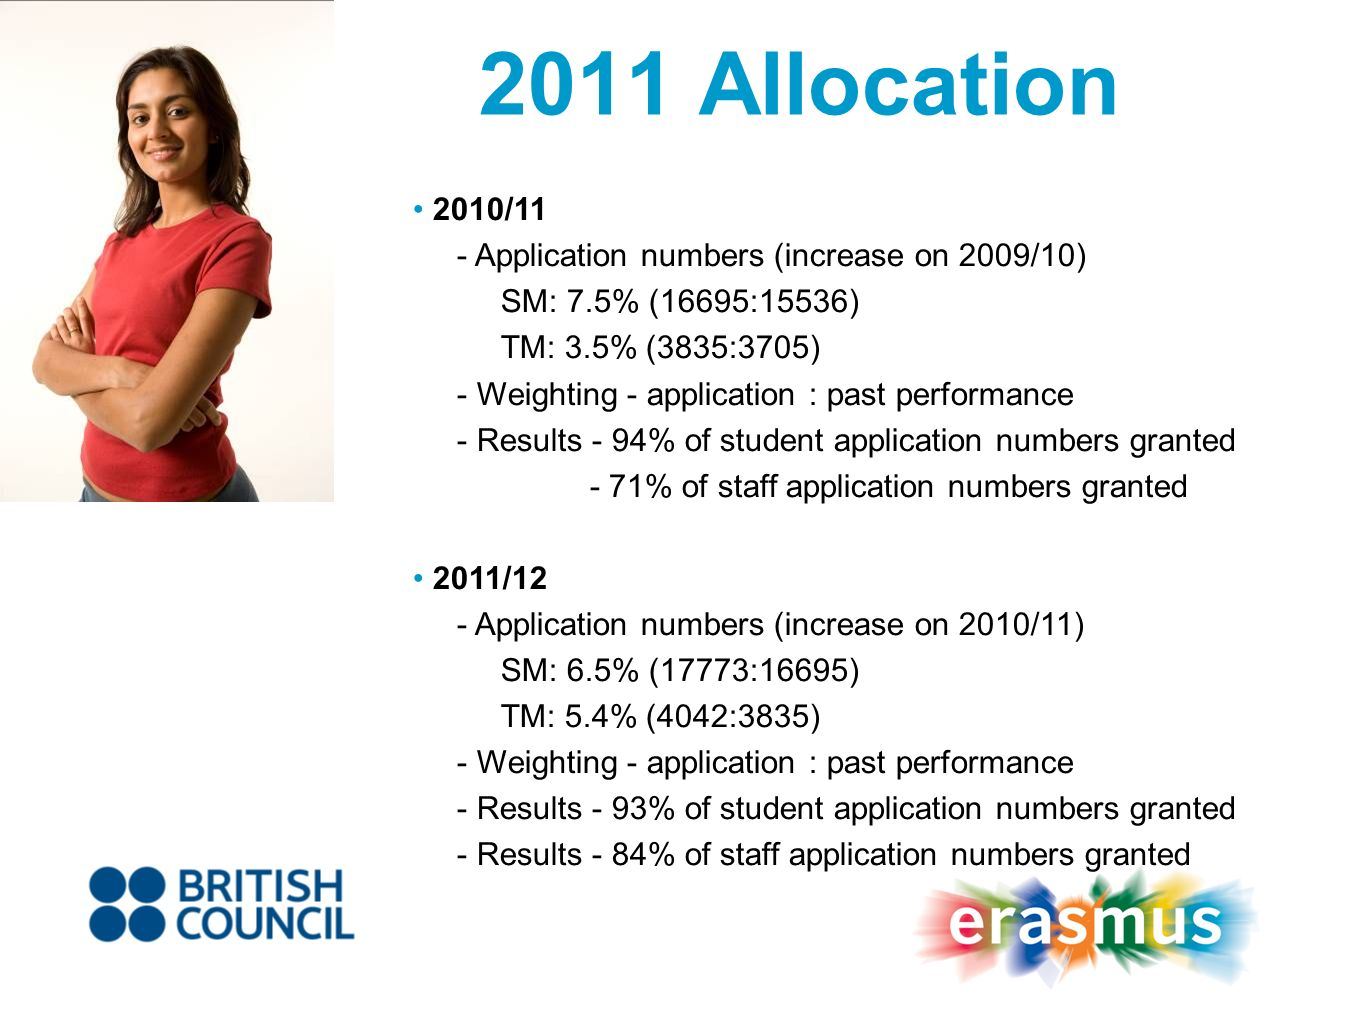 2011 Allocation 2010/11 - Application numbers (increase on 2009/10) SM: 7.5% (16695:15536) TM: 3.5% (3835:3705) - Weighting - application : past performance - Results - 94% of student application numbers granted - 71% of staff application numbers granted 2011/12 - Application numbers (increase on 2010/11) SM: 6.5% (17773:16695) TM: 5.4% (4042:3835) - Weighting - application : past performance - Results - 93% of student application numbers granted - Results - 84% of staff application numbers granted